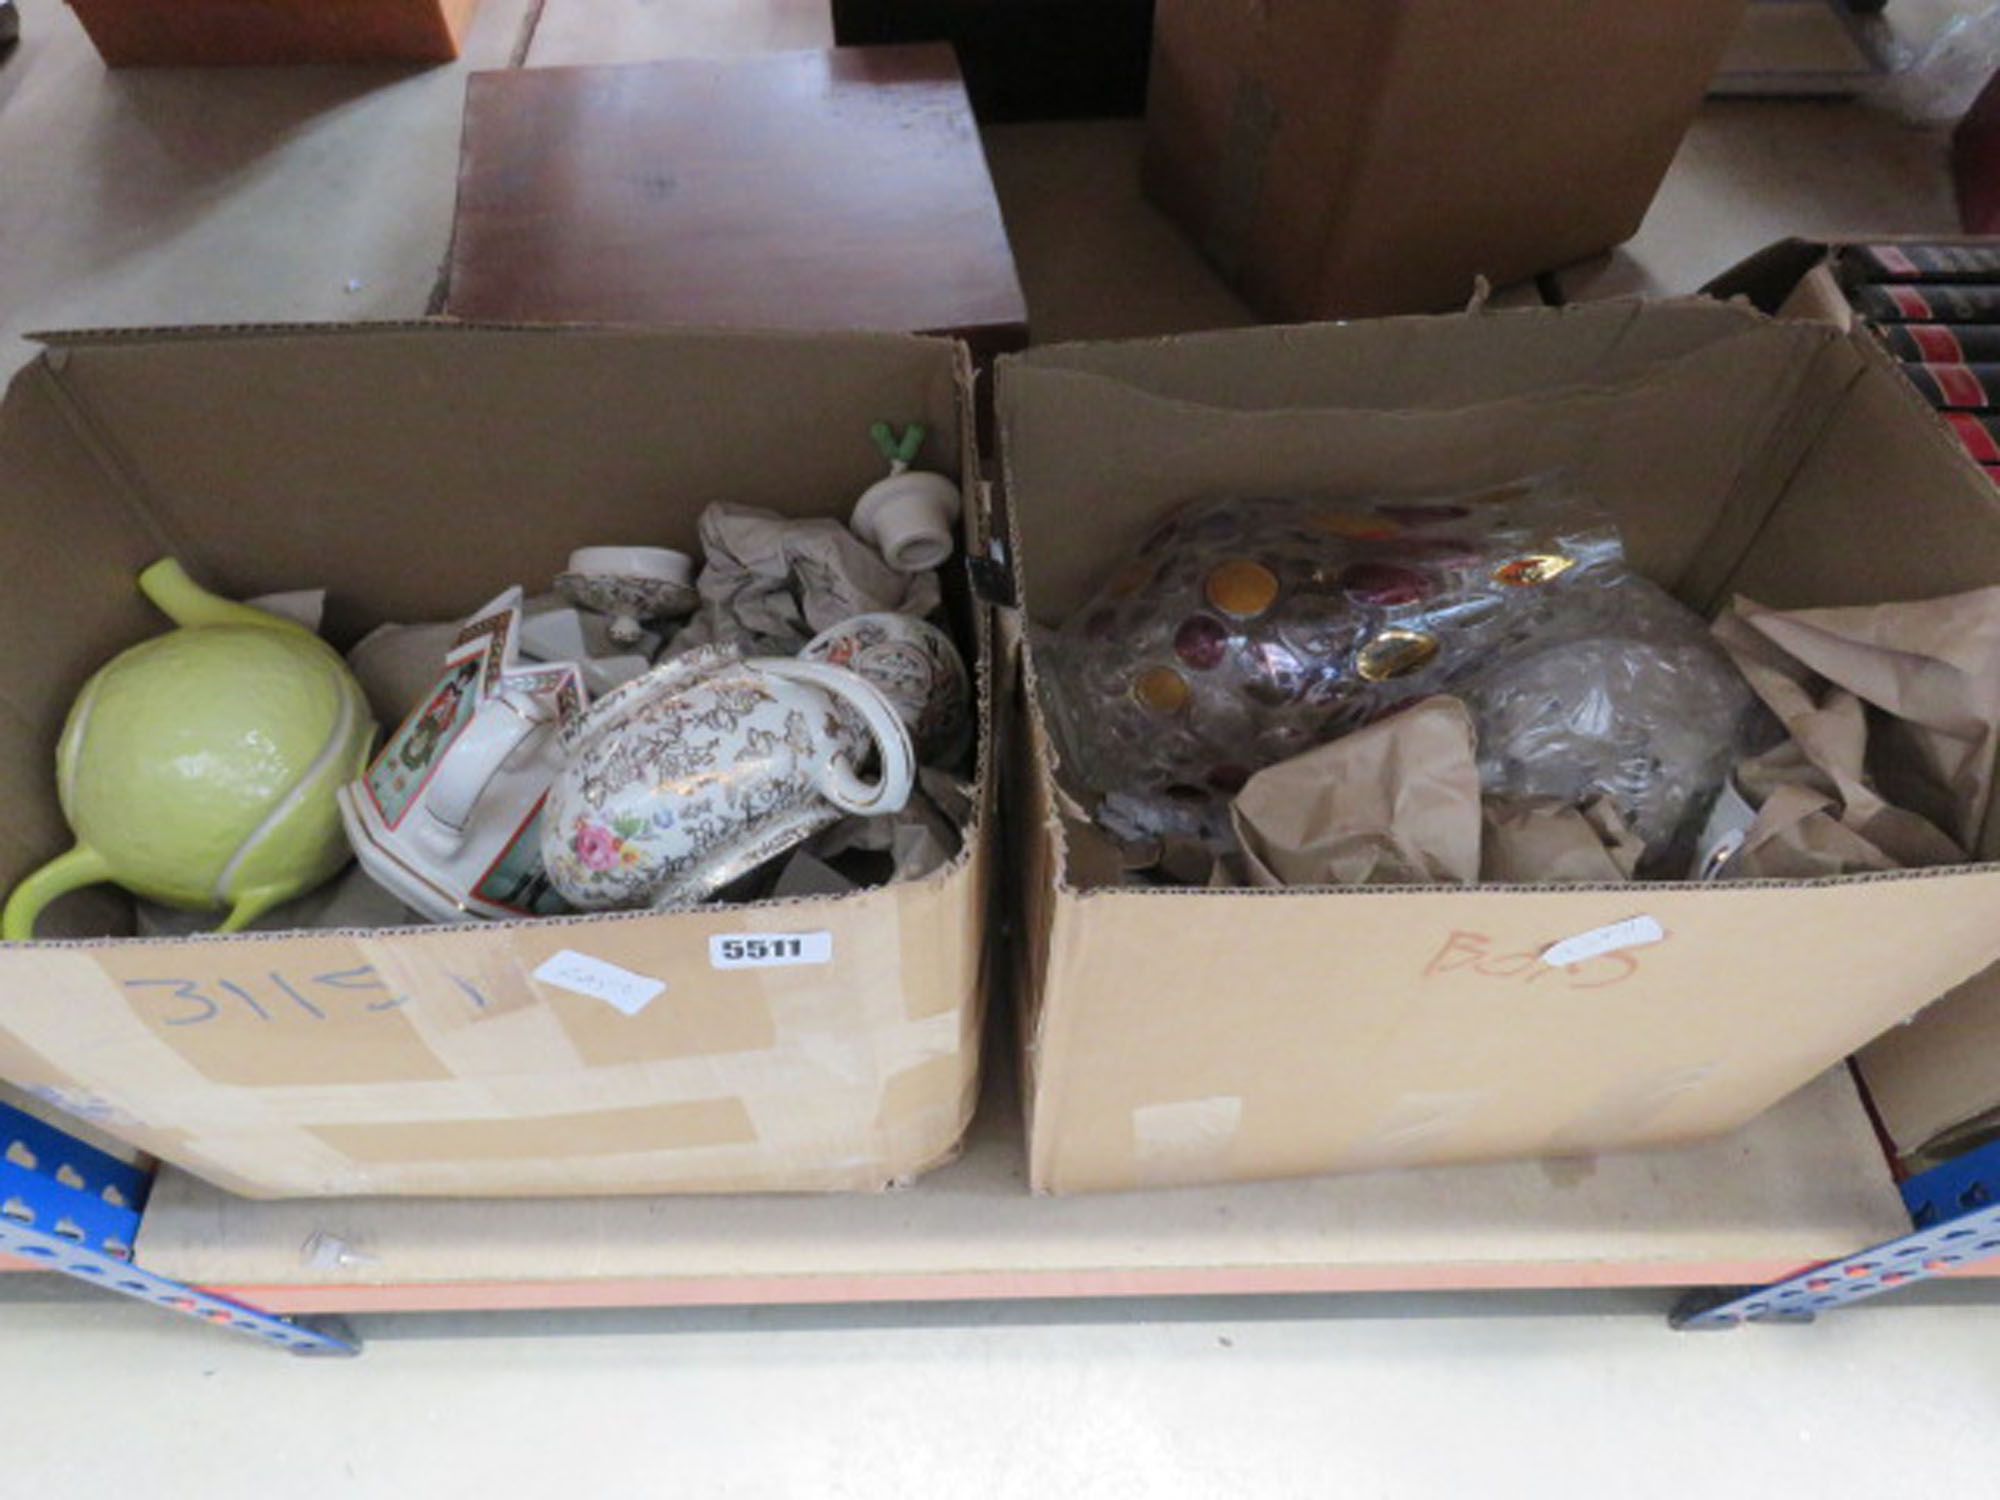 2 boxes containing quantity of floral patterned crockery, novelty tennis ball, teapots, plus